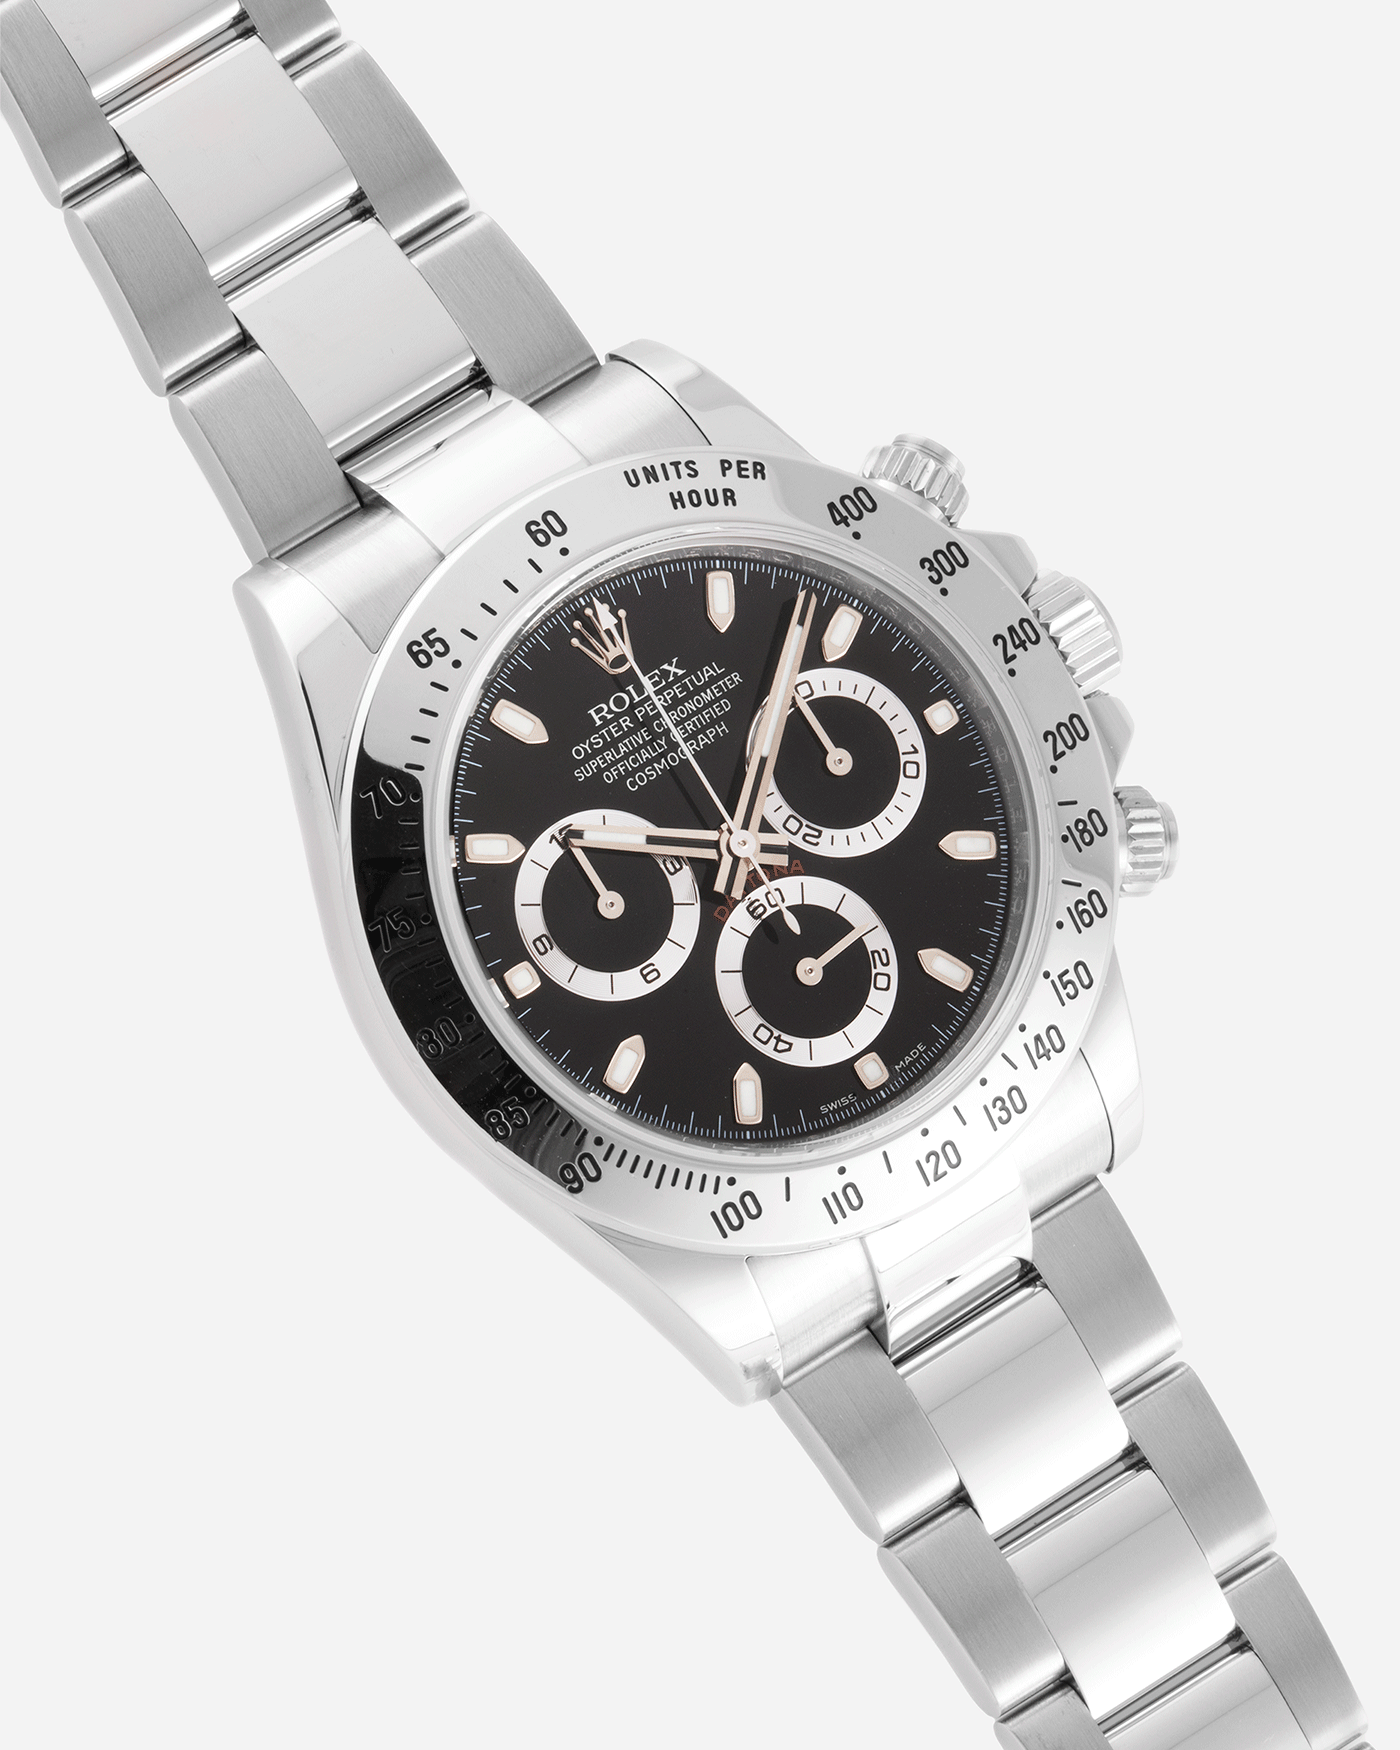 Rolex Cosmograph Daytona 116520 Chronograph Watch | S.Song Vintage Timepieces